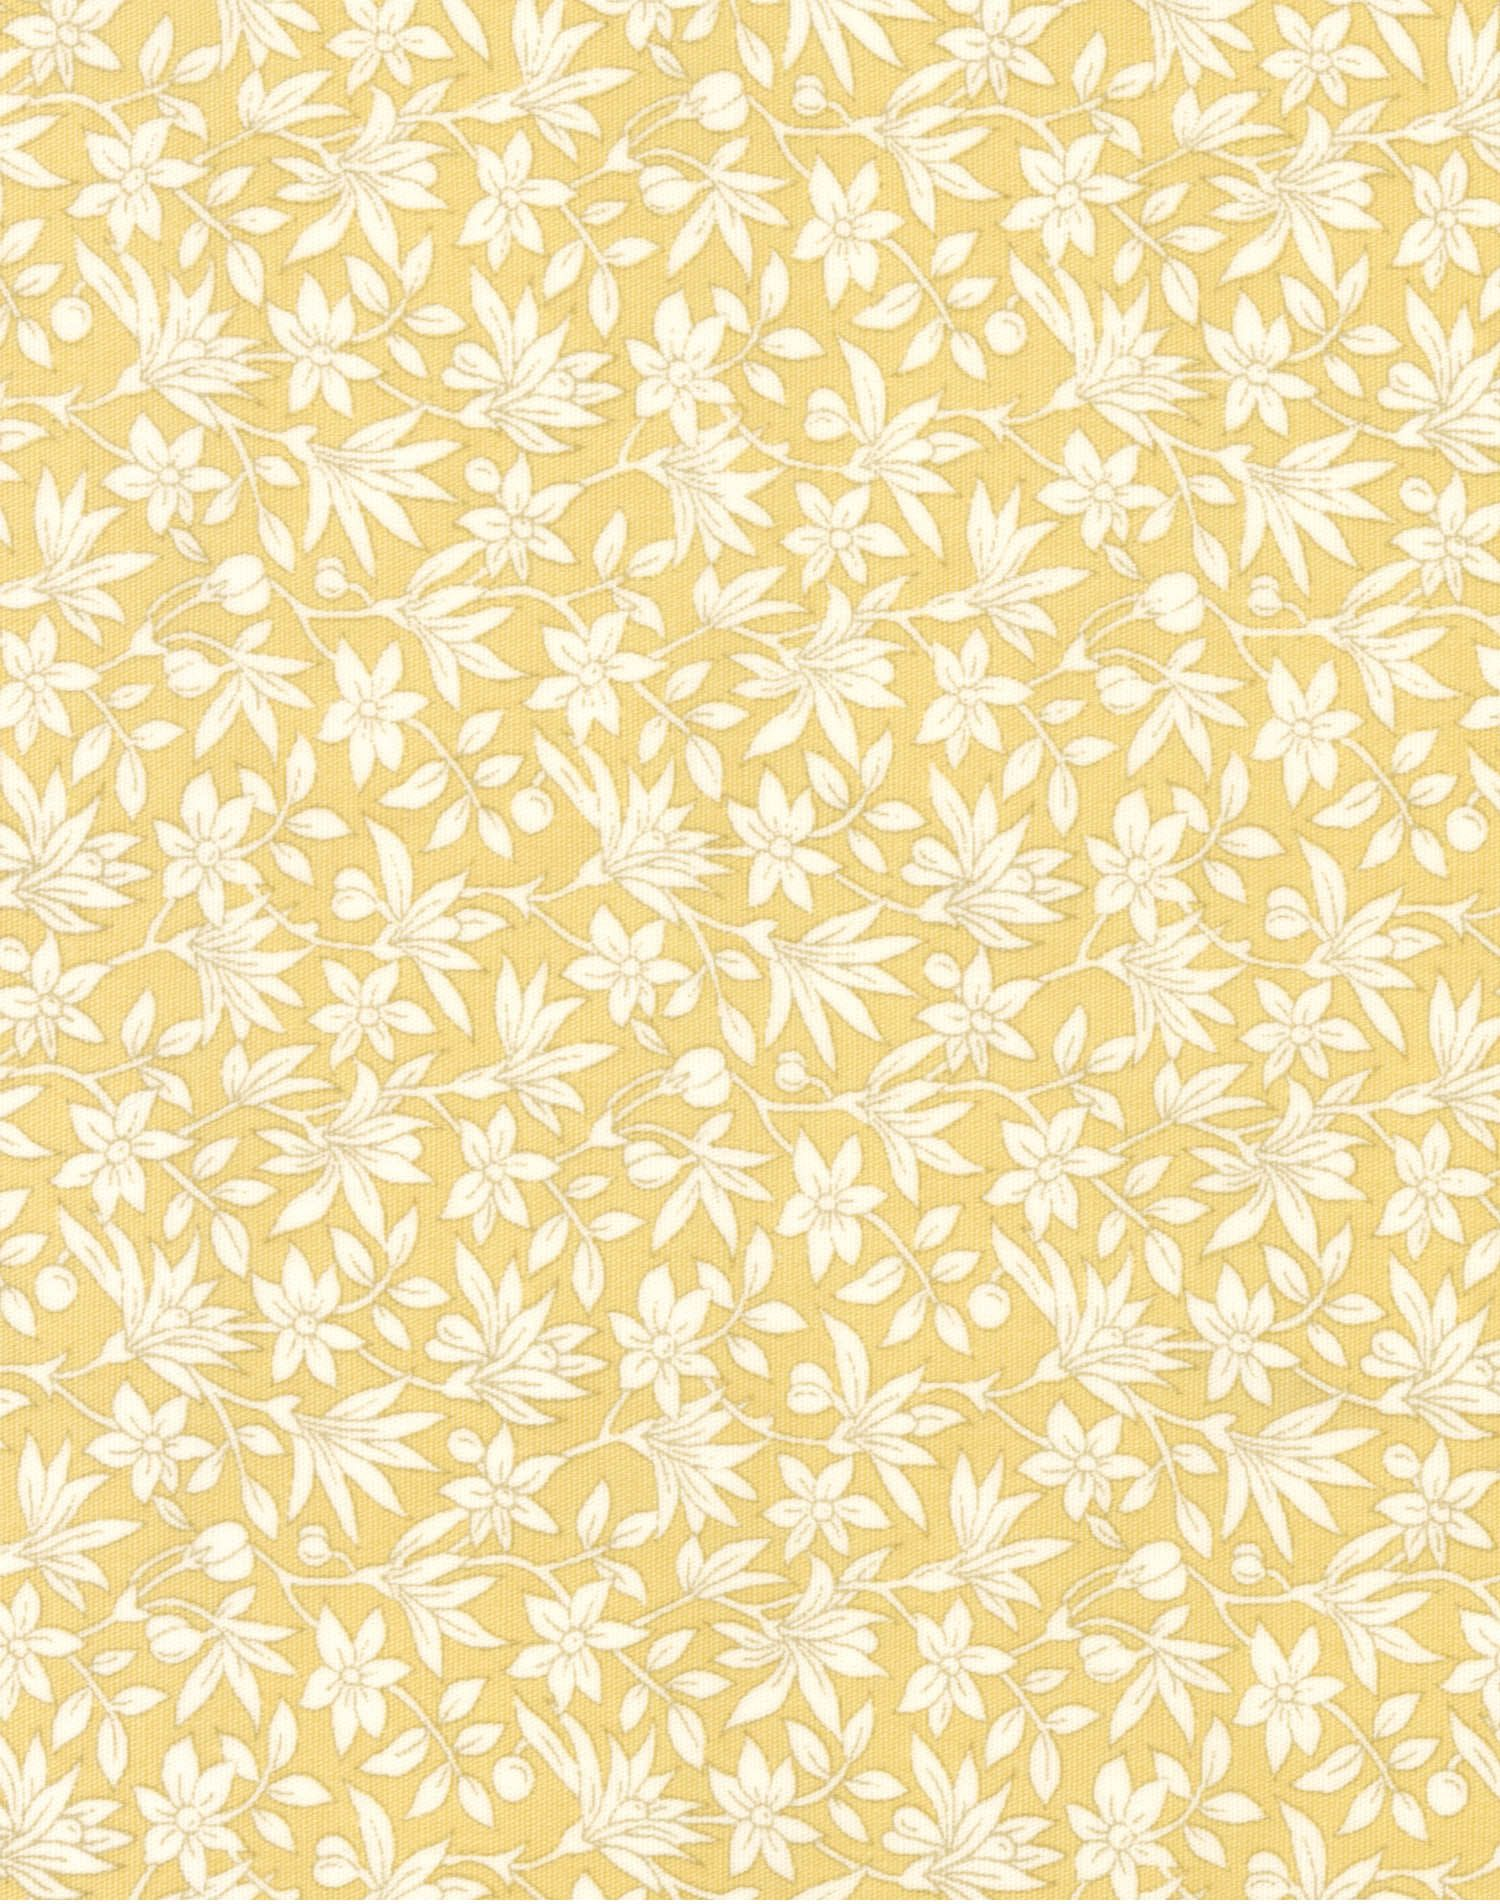 Mimosa Pattern Vintage Flower Backgrounds Vintage Flowers Wallpaper Vintage Flowers